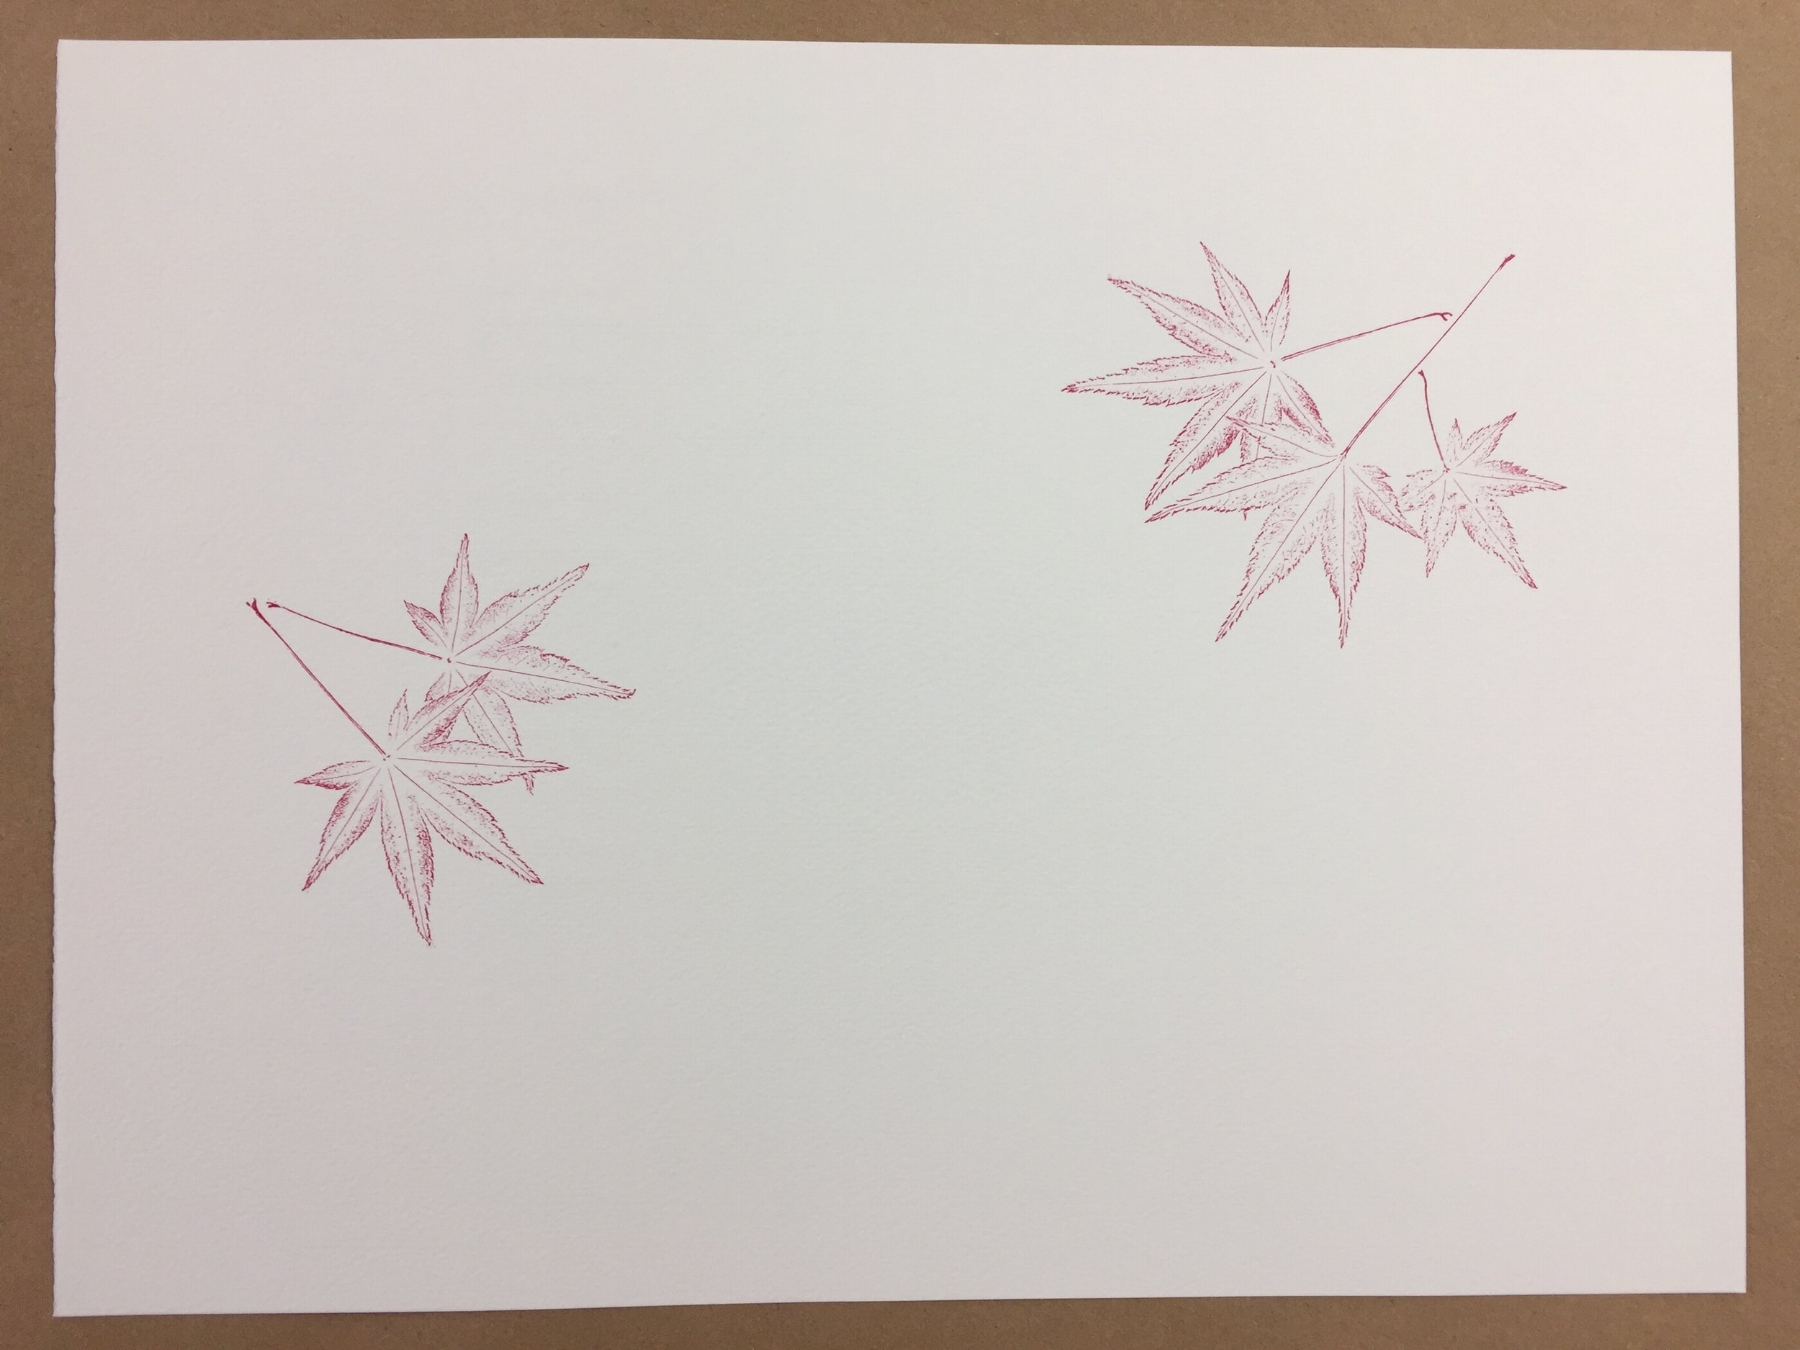 And voila! A page with lovely Japanese maple leaf prints.